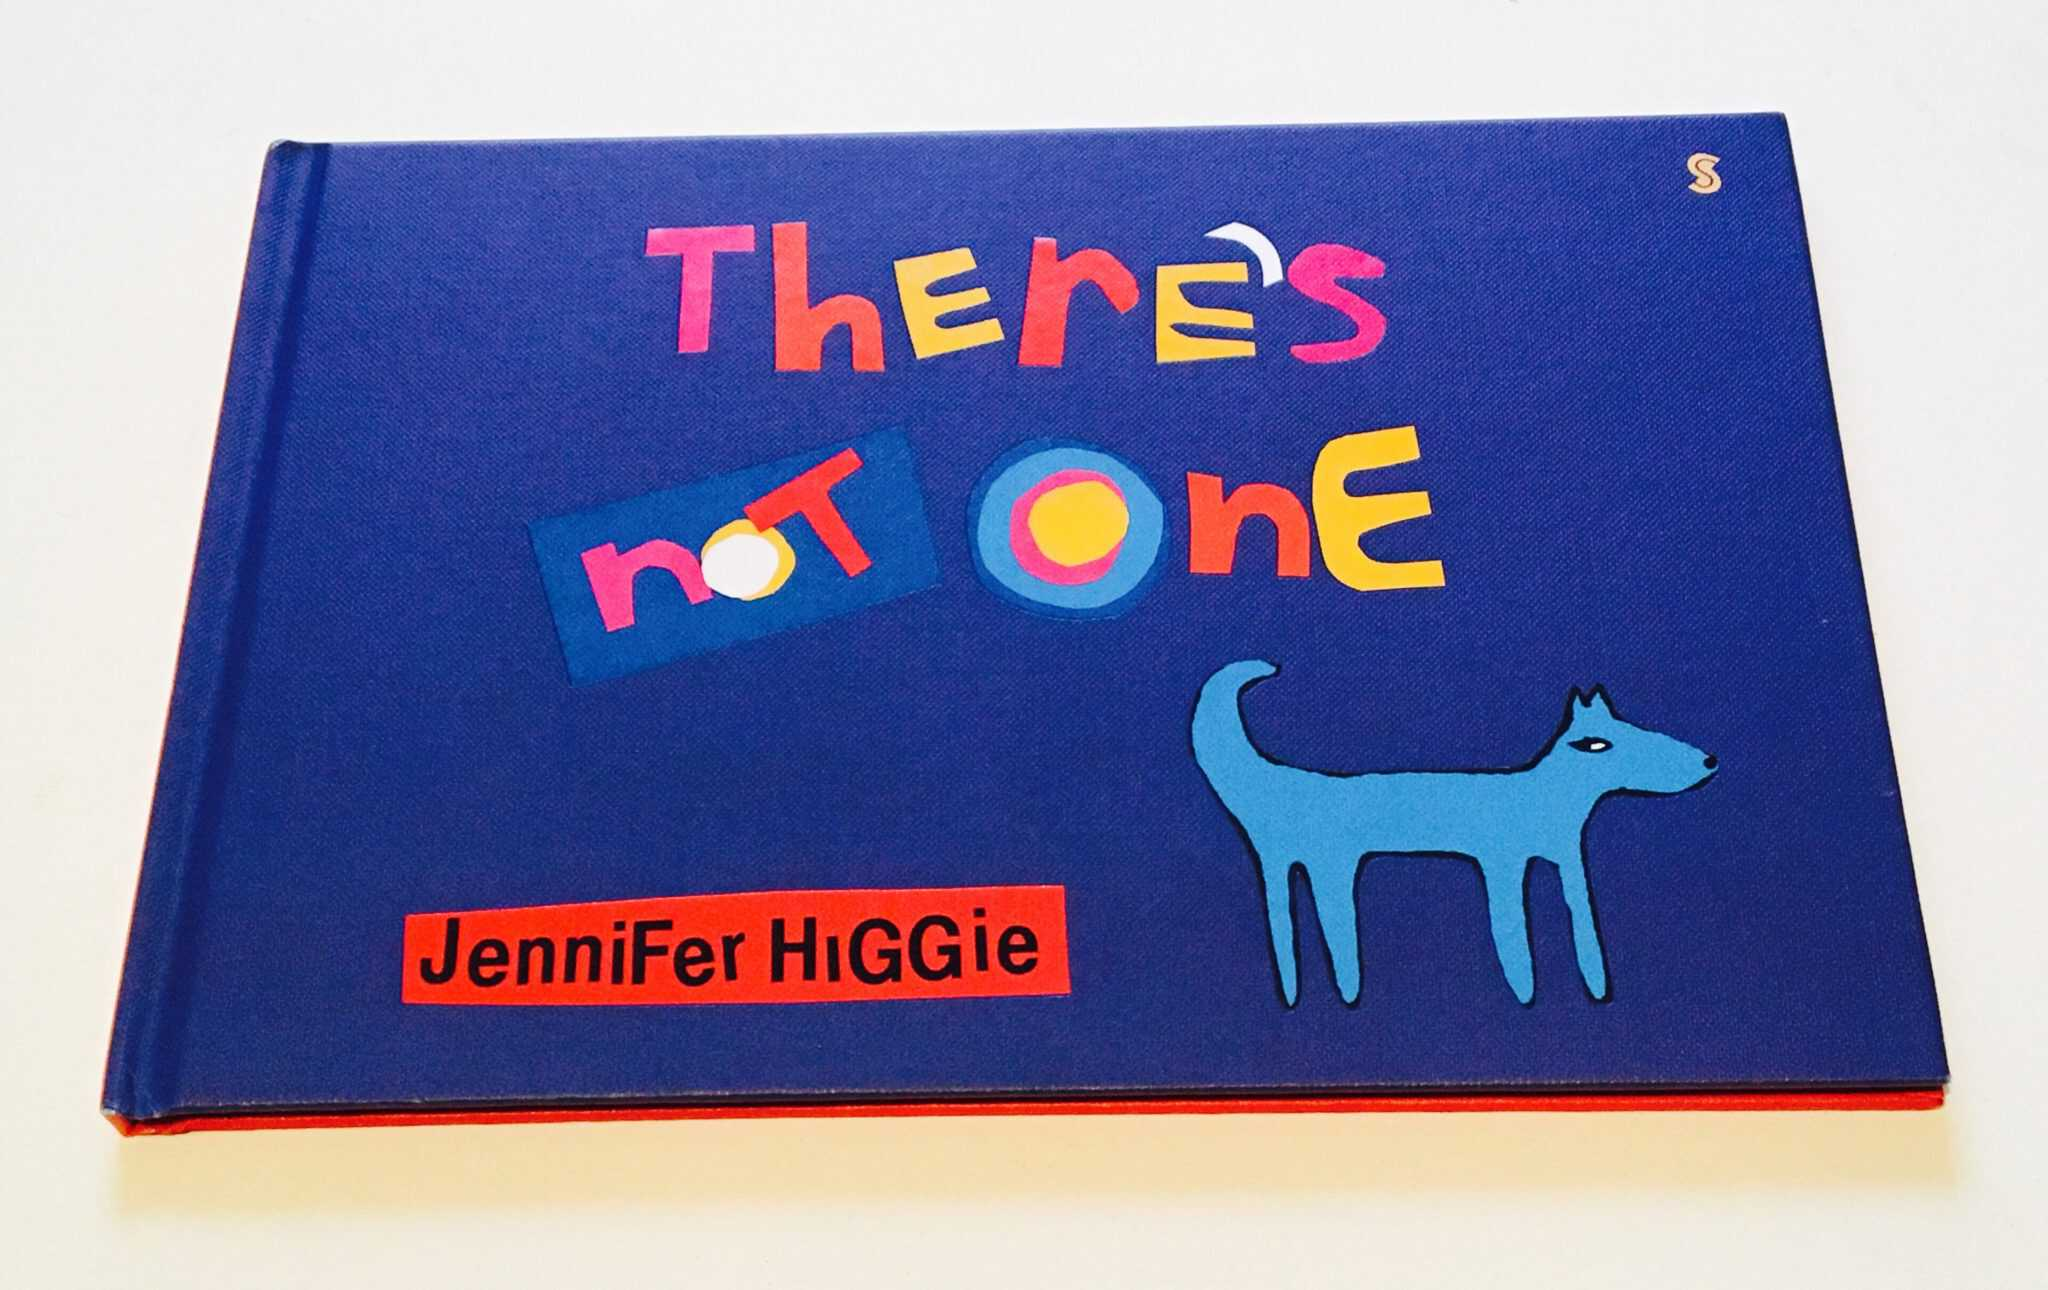 There's Not One by Jennefer Higgie